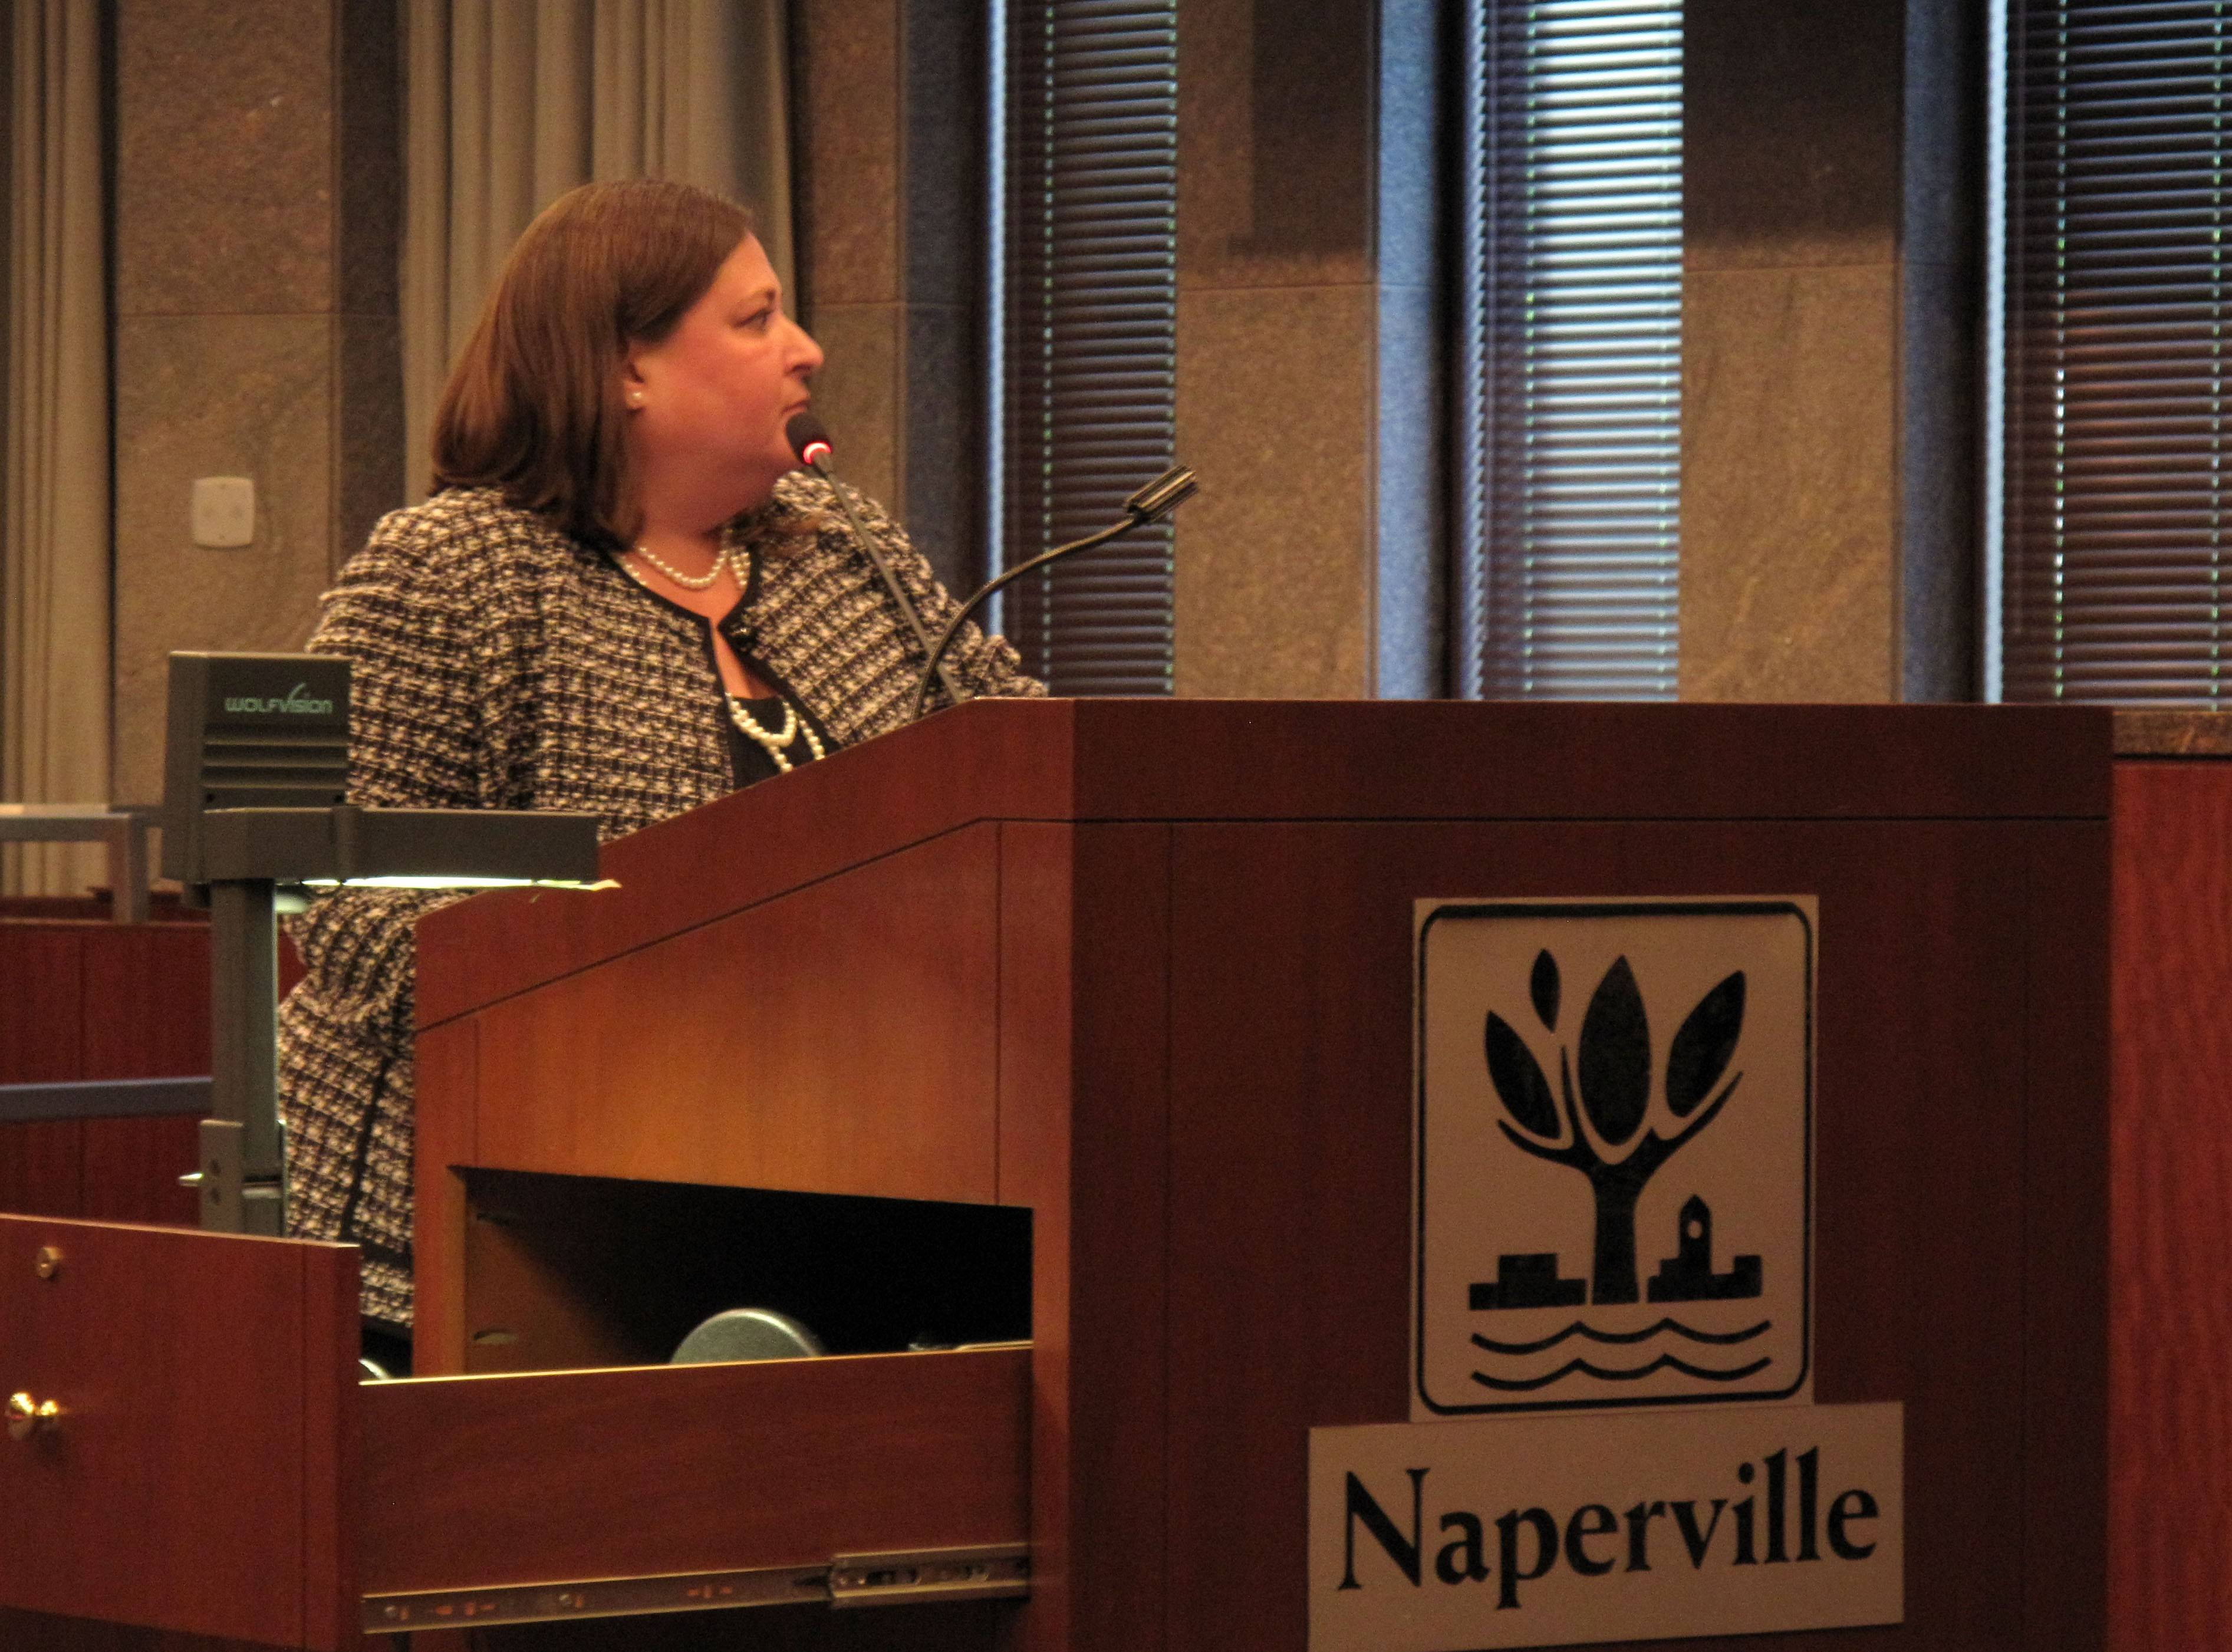 Sherri Oslick of Naperville asks Naperville City Council members to ban the sale of puppies from so-called puppy mills during a meeting Tuesday night. She was one of nine speakers to address the topic, which is scheduled to be discussed again Aug. 19.